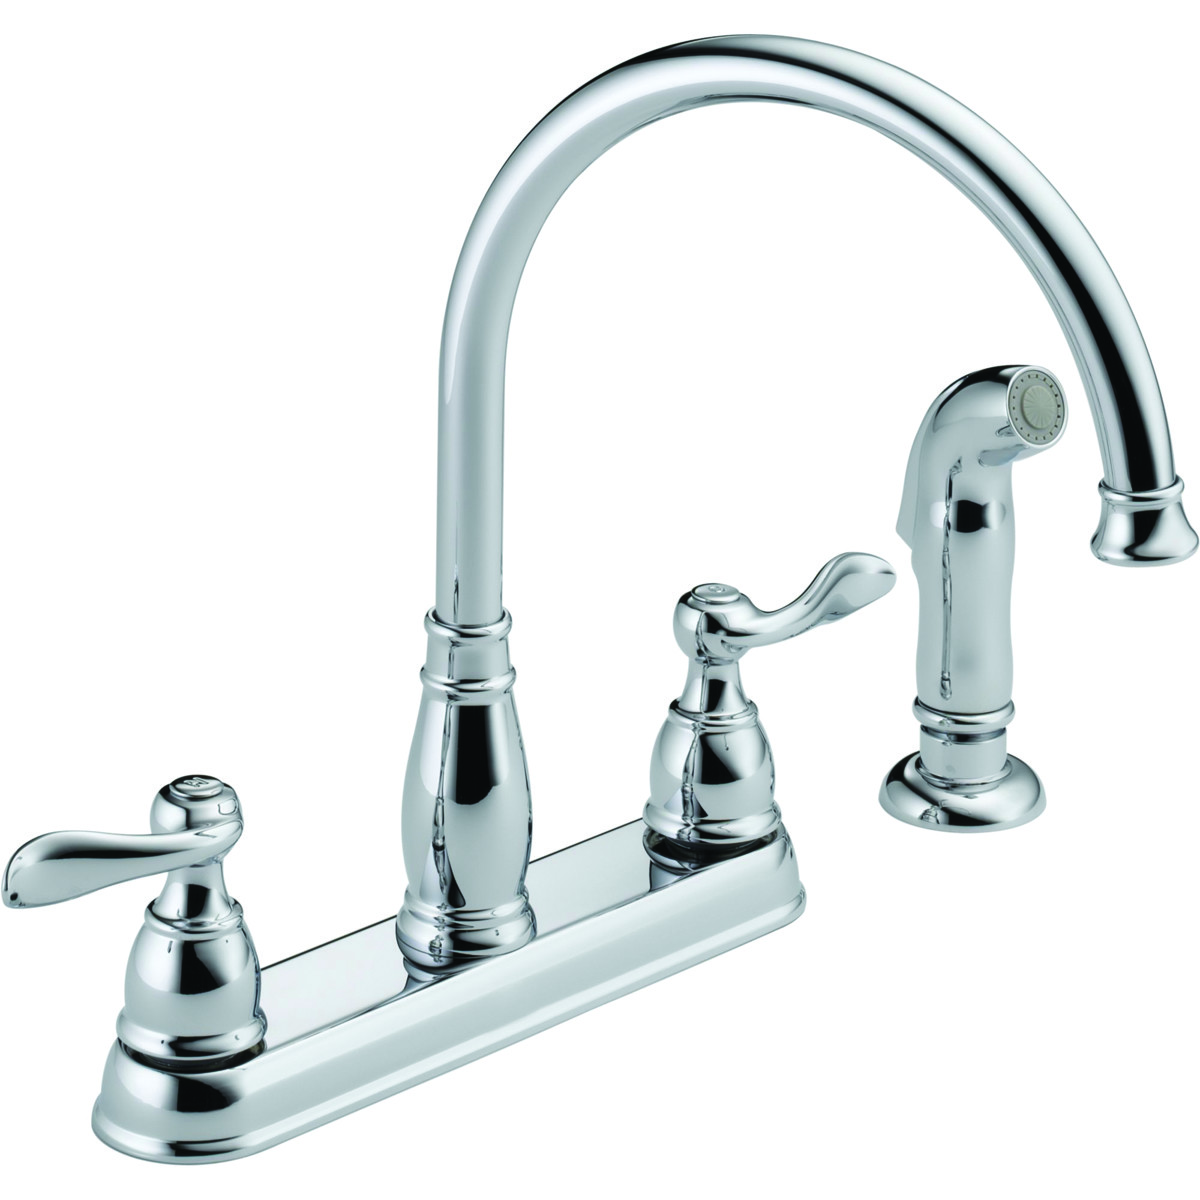 delta faucet 21996lf kitchen faucet 2 handle spray chrome with side sprayer